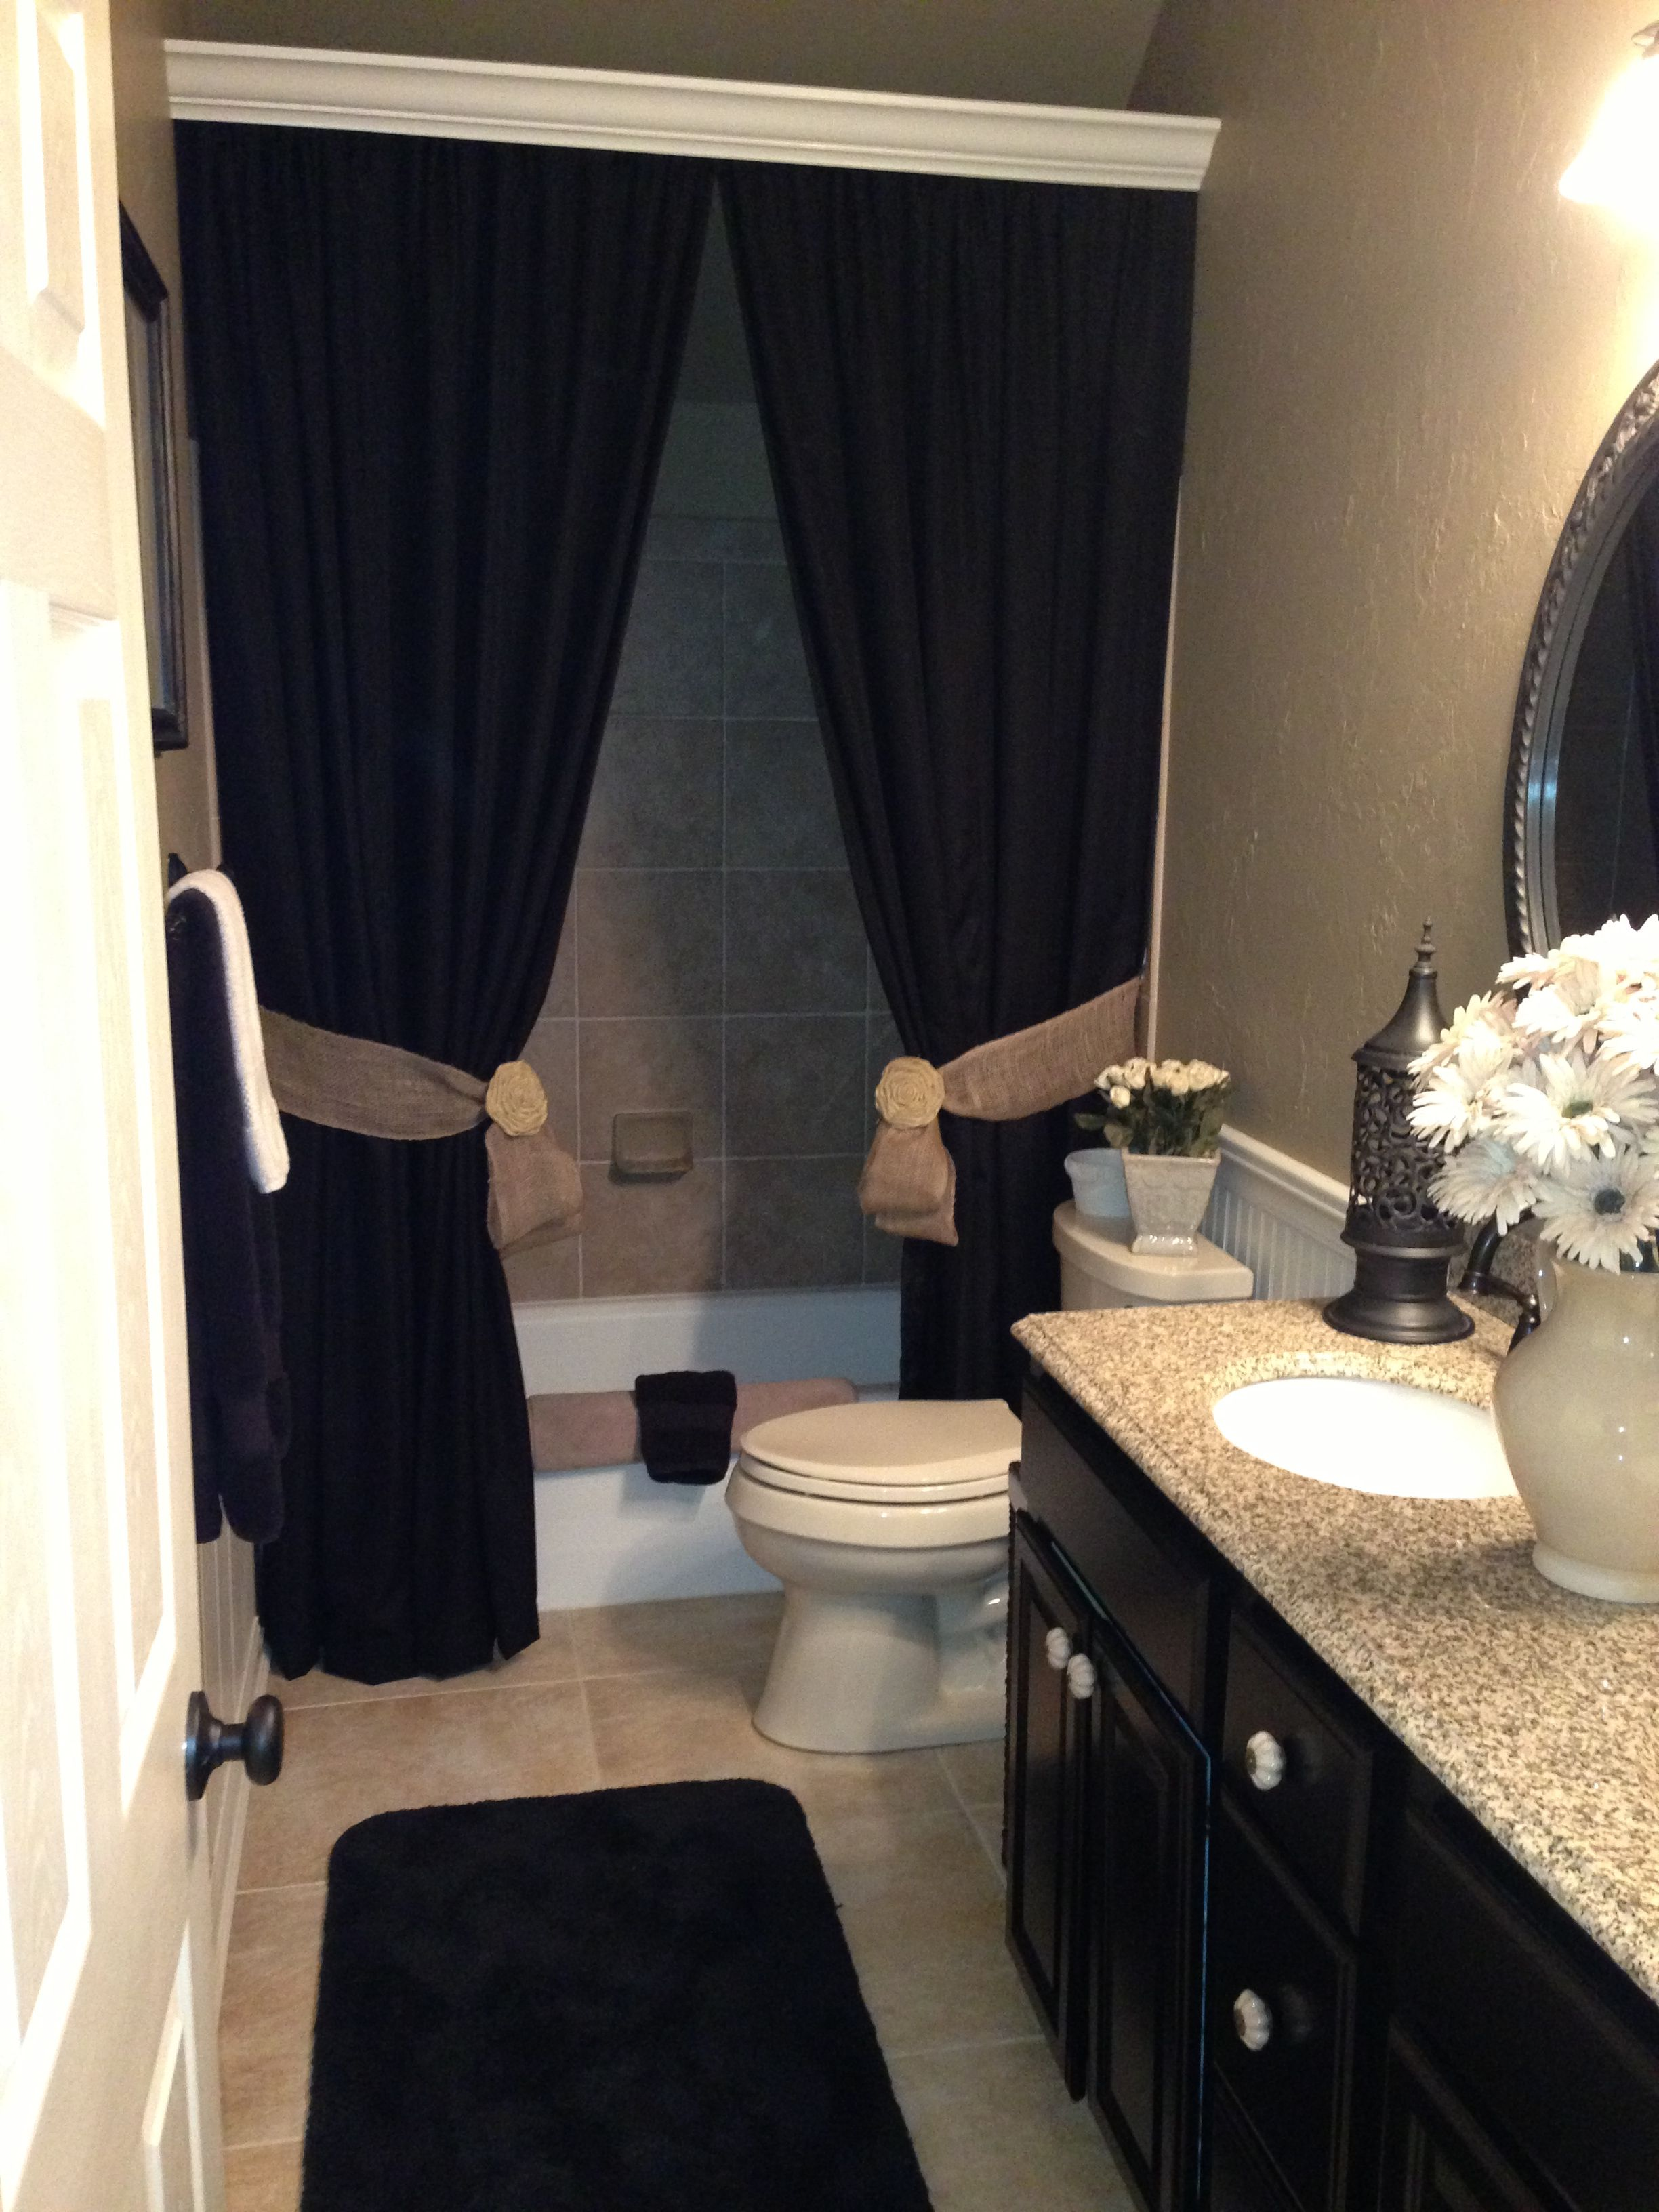 Bathroom Ideas With Shower Curtains 30 Small Bathroom Design Ideas Home Bathroom Design Small